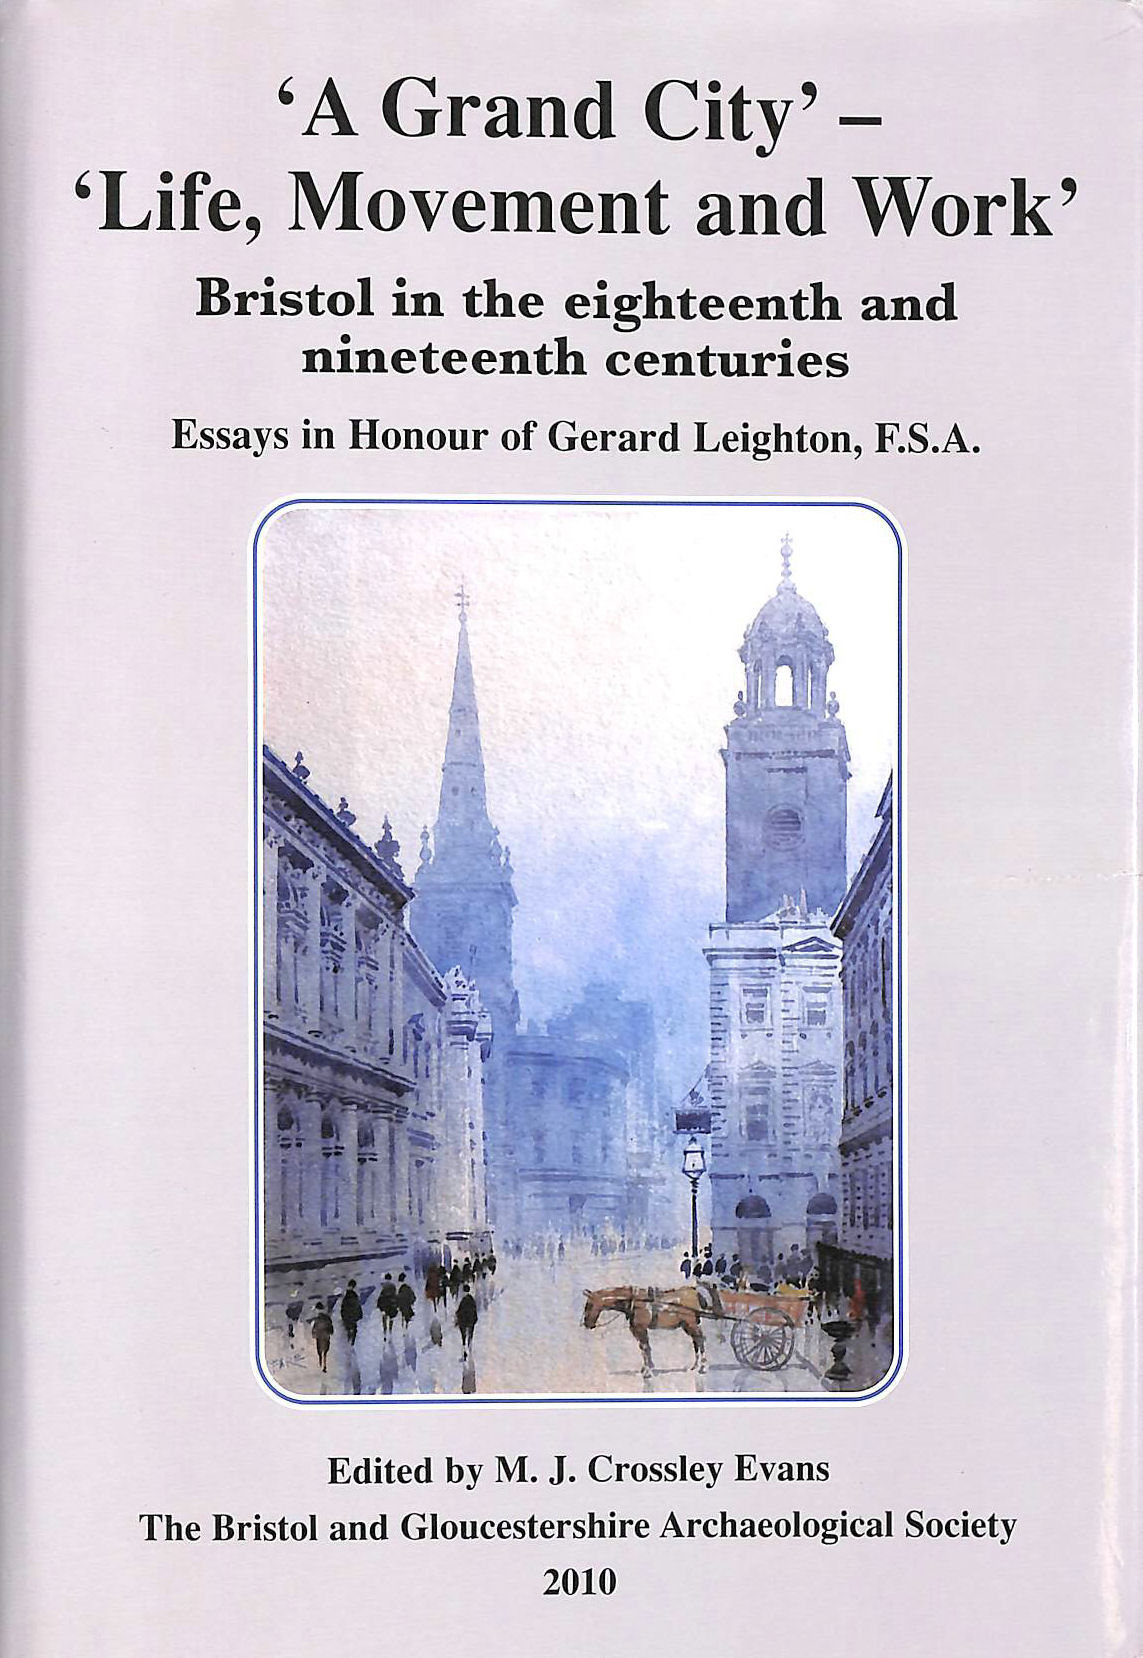 Image for A Grand City: Life, Movement and Work:  Bristol in the eighteenth and nineteenth centuries, Essays in Honour of Gerard Leighton